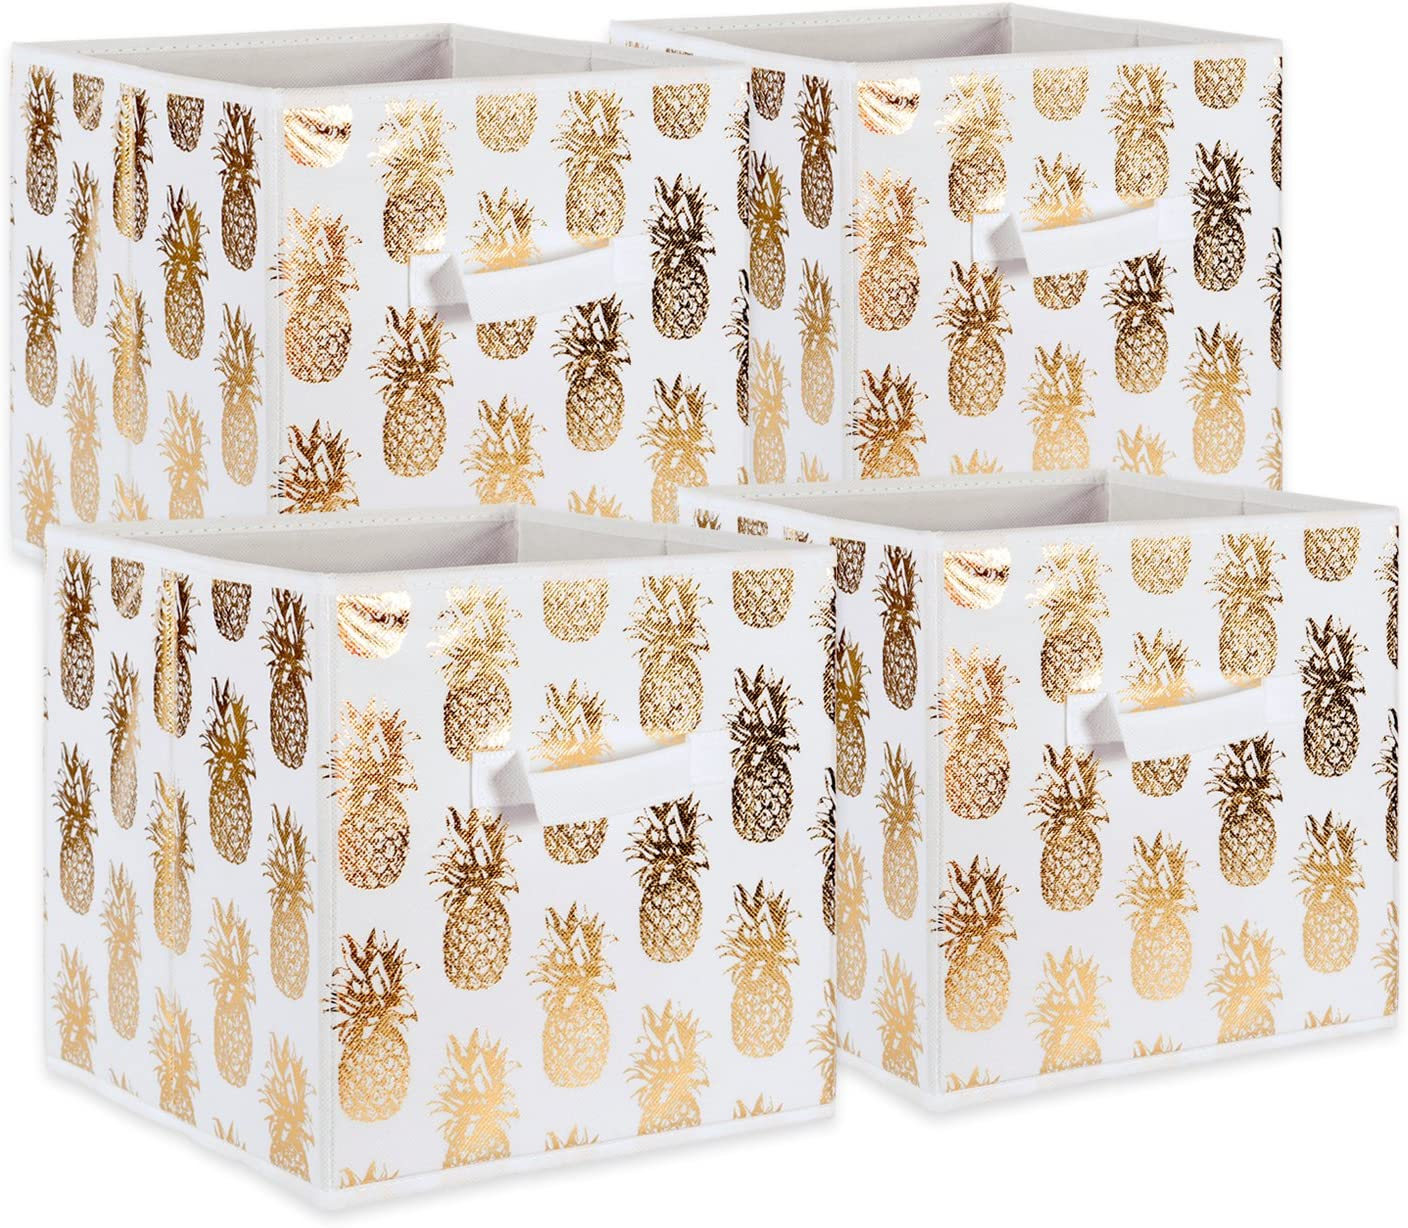 DII Foldable Fabric Storage Containers (11x11x11) Pineapple Set of 4, Small (4), White/Gold 4 Set